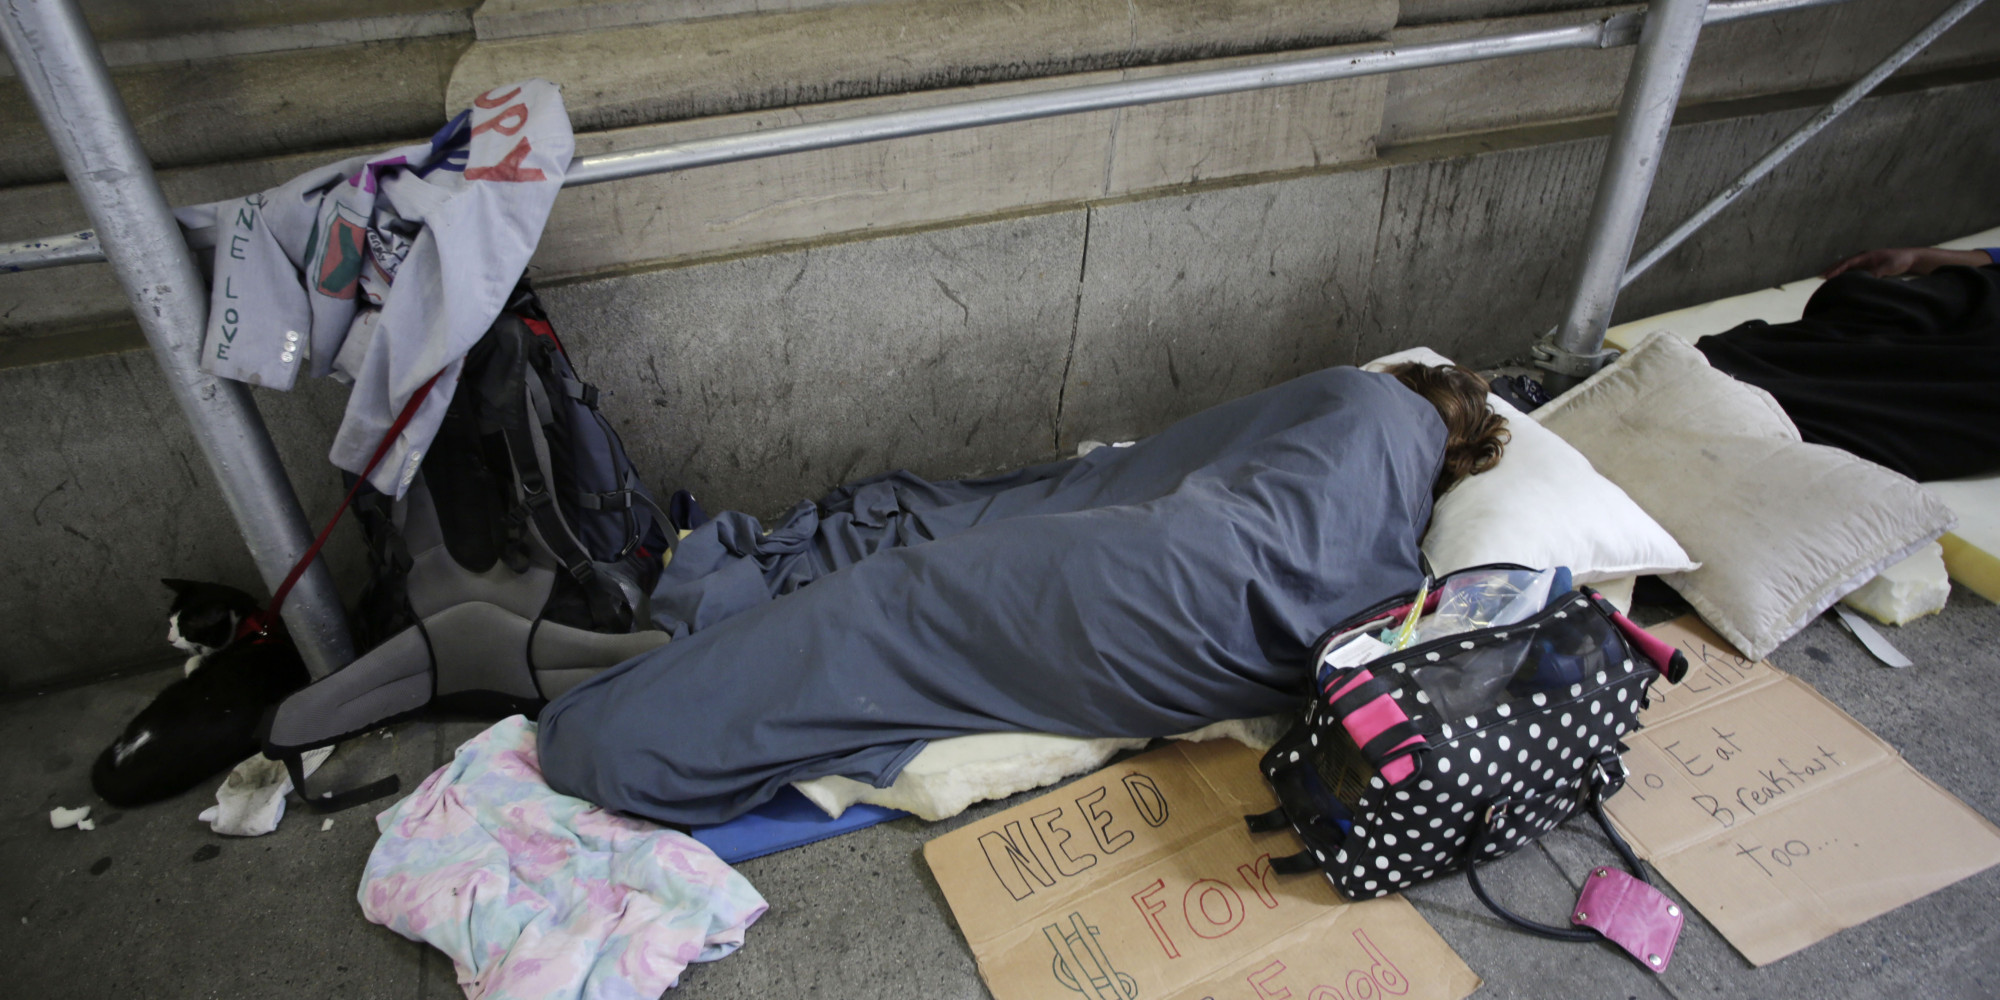 The National Coalition for the Homeless